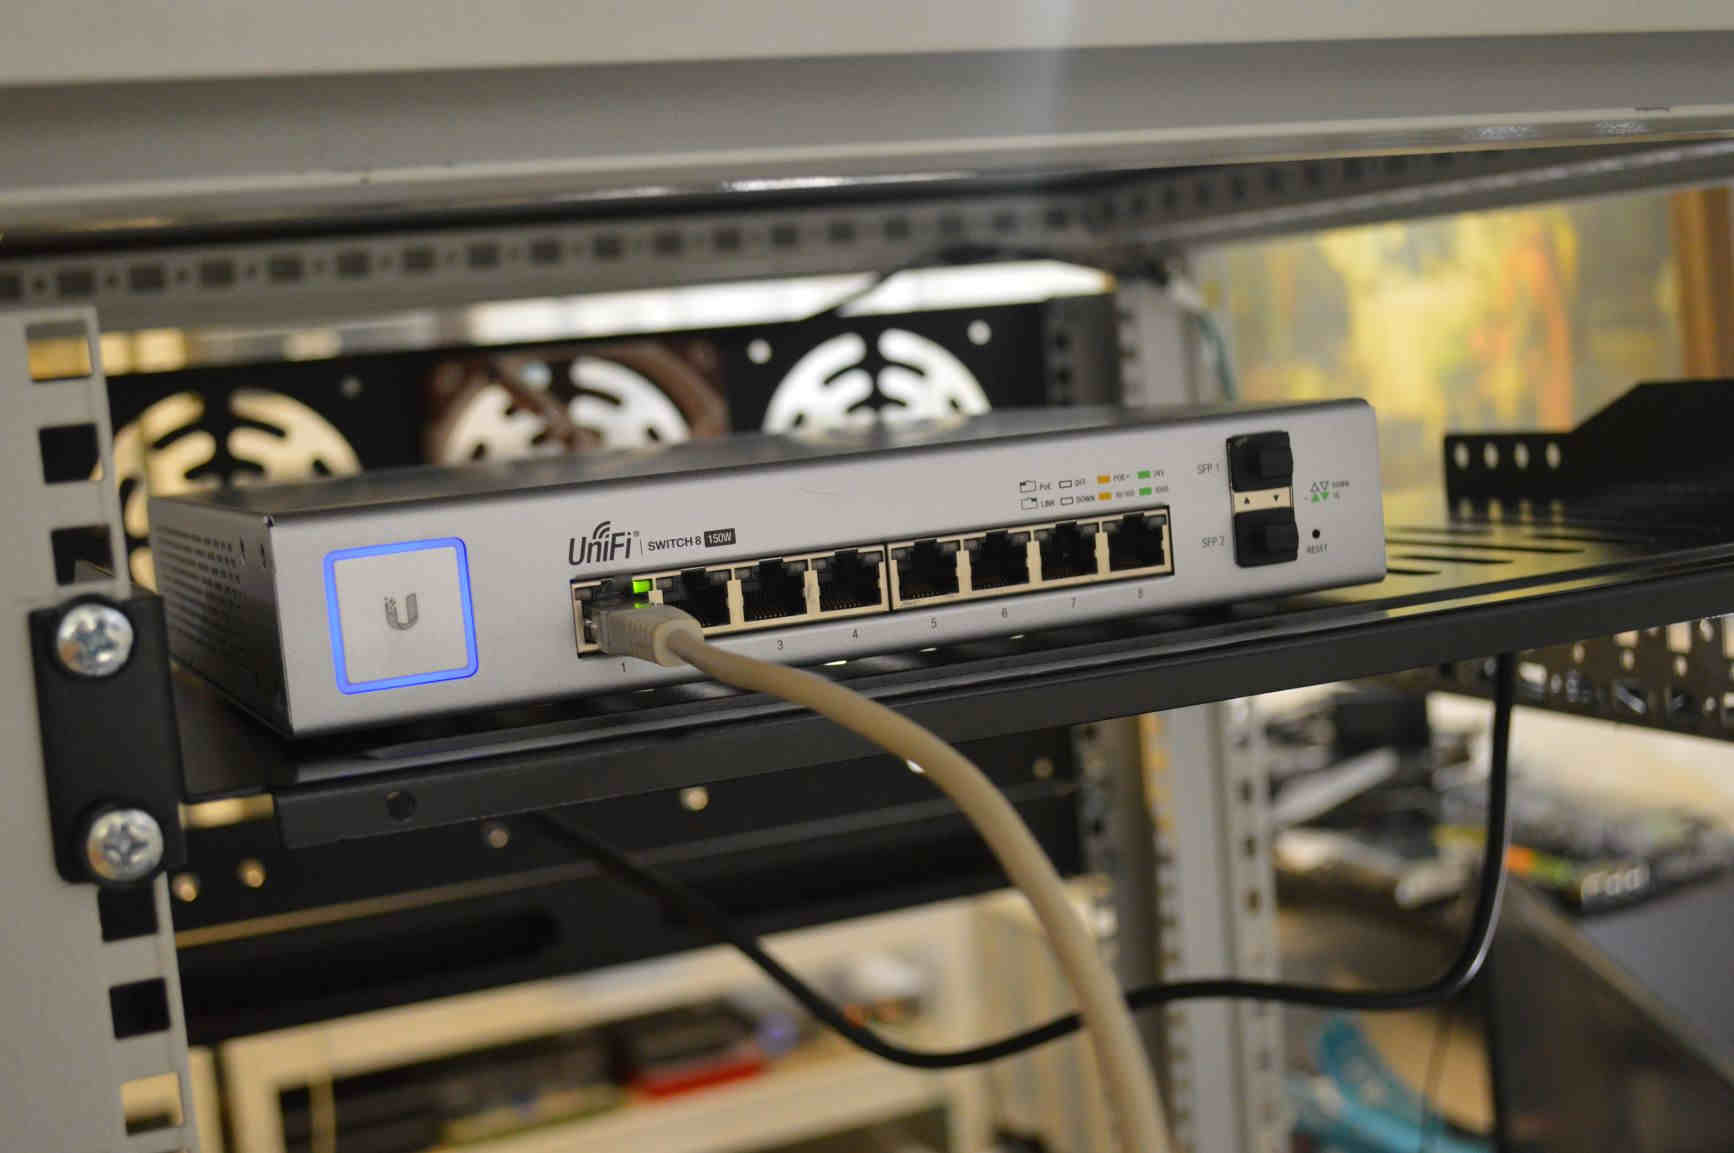 Unifi Switch for Home Wifi Network